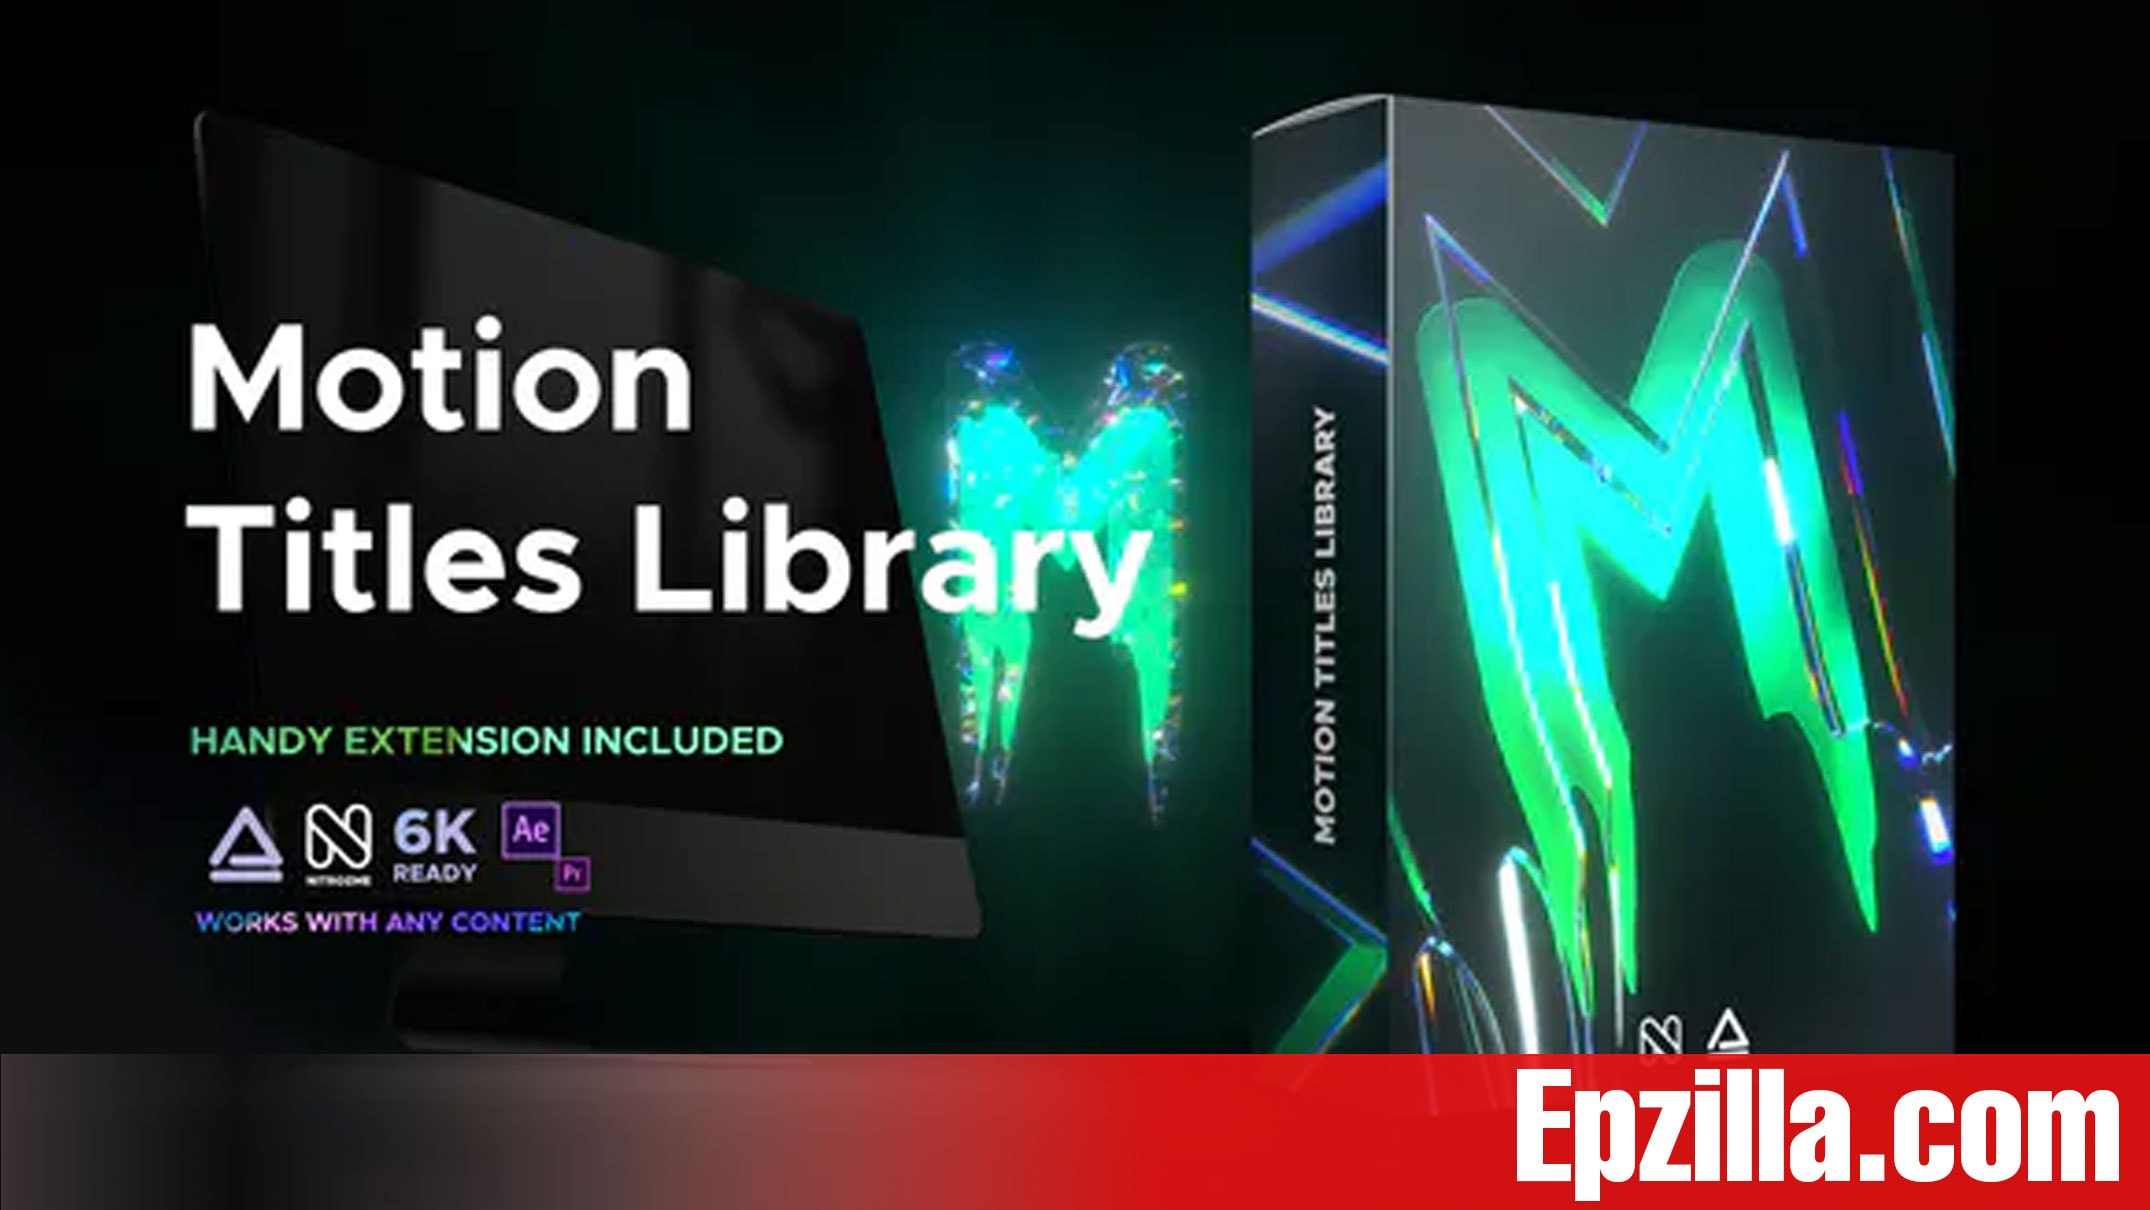 Videohive Motion Titles Library Animated Text Package 33708192 Free Download Epzilla.com